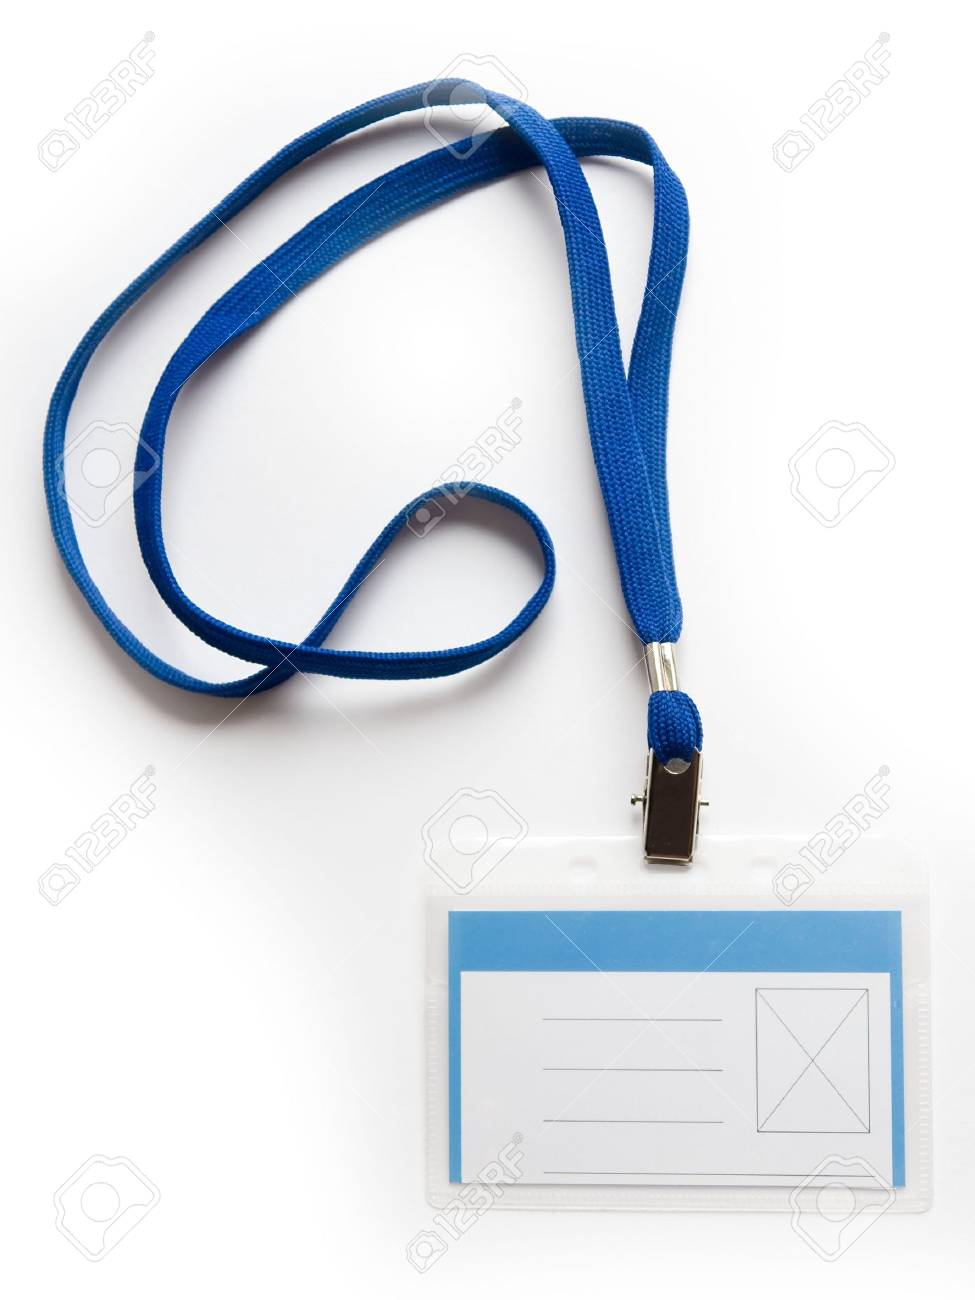 blank id card badge with copy space on a white background stock